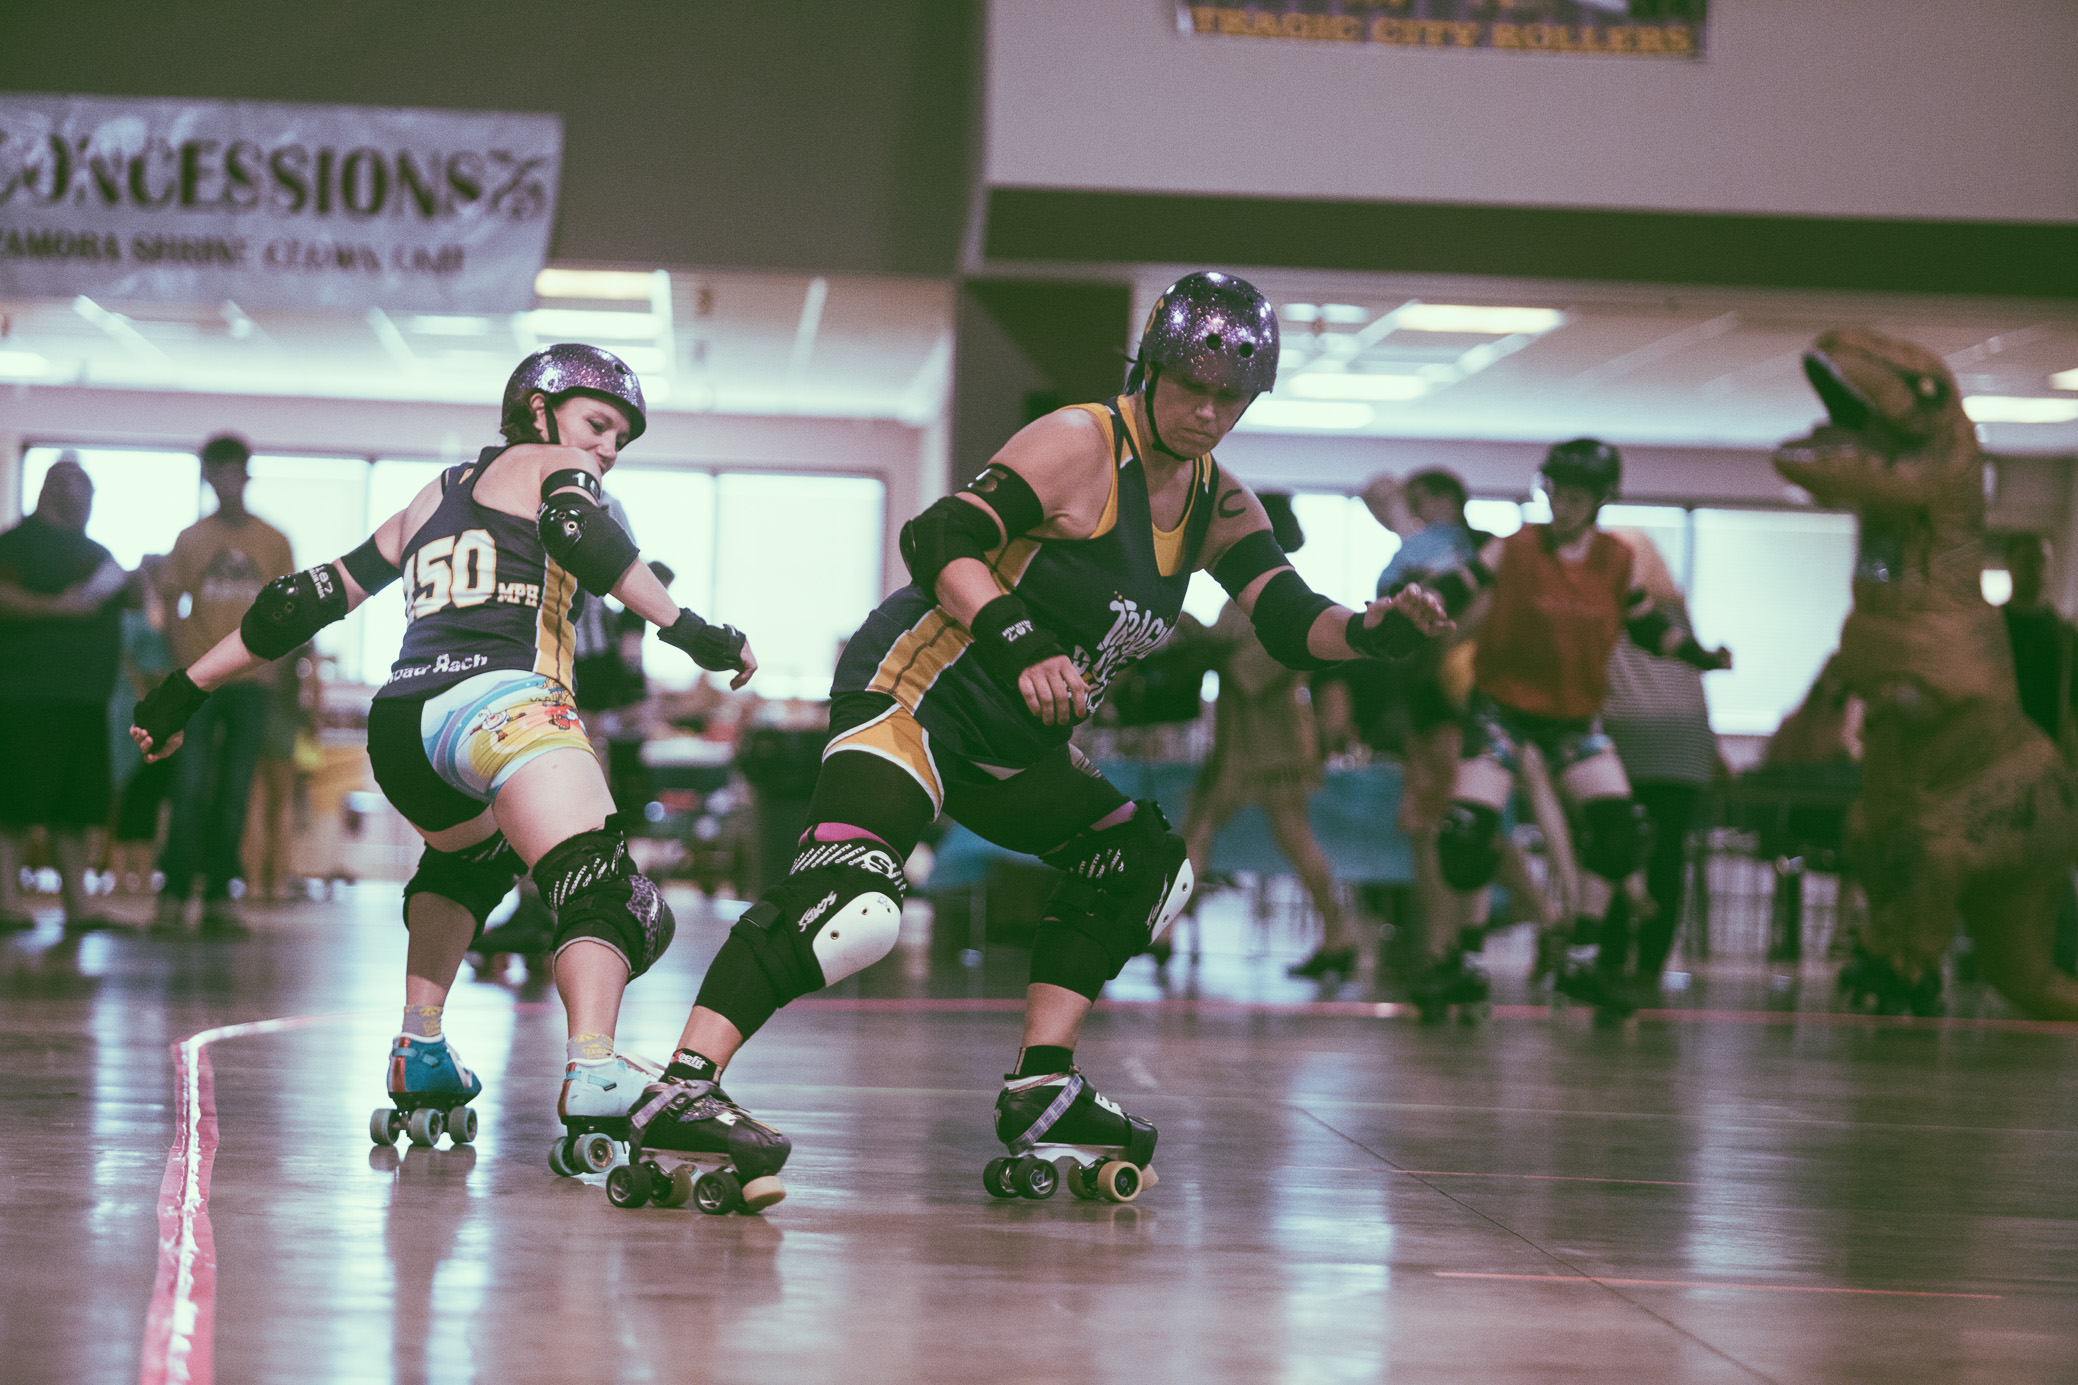 Tragic City Rollers vs. Muscogee Roller Girls